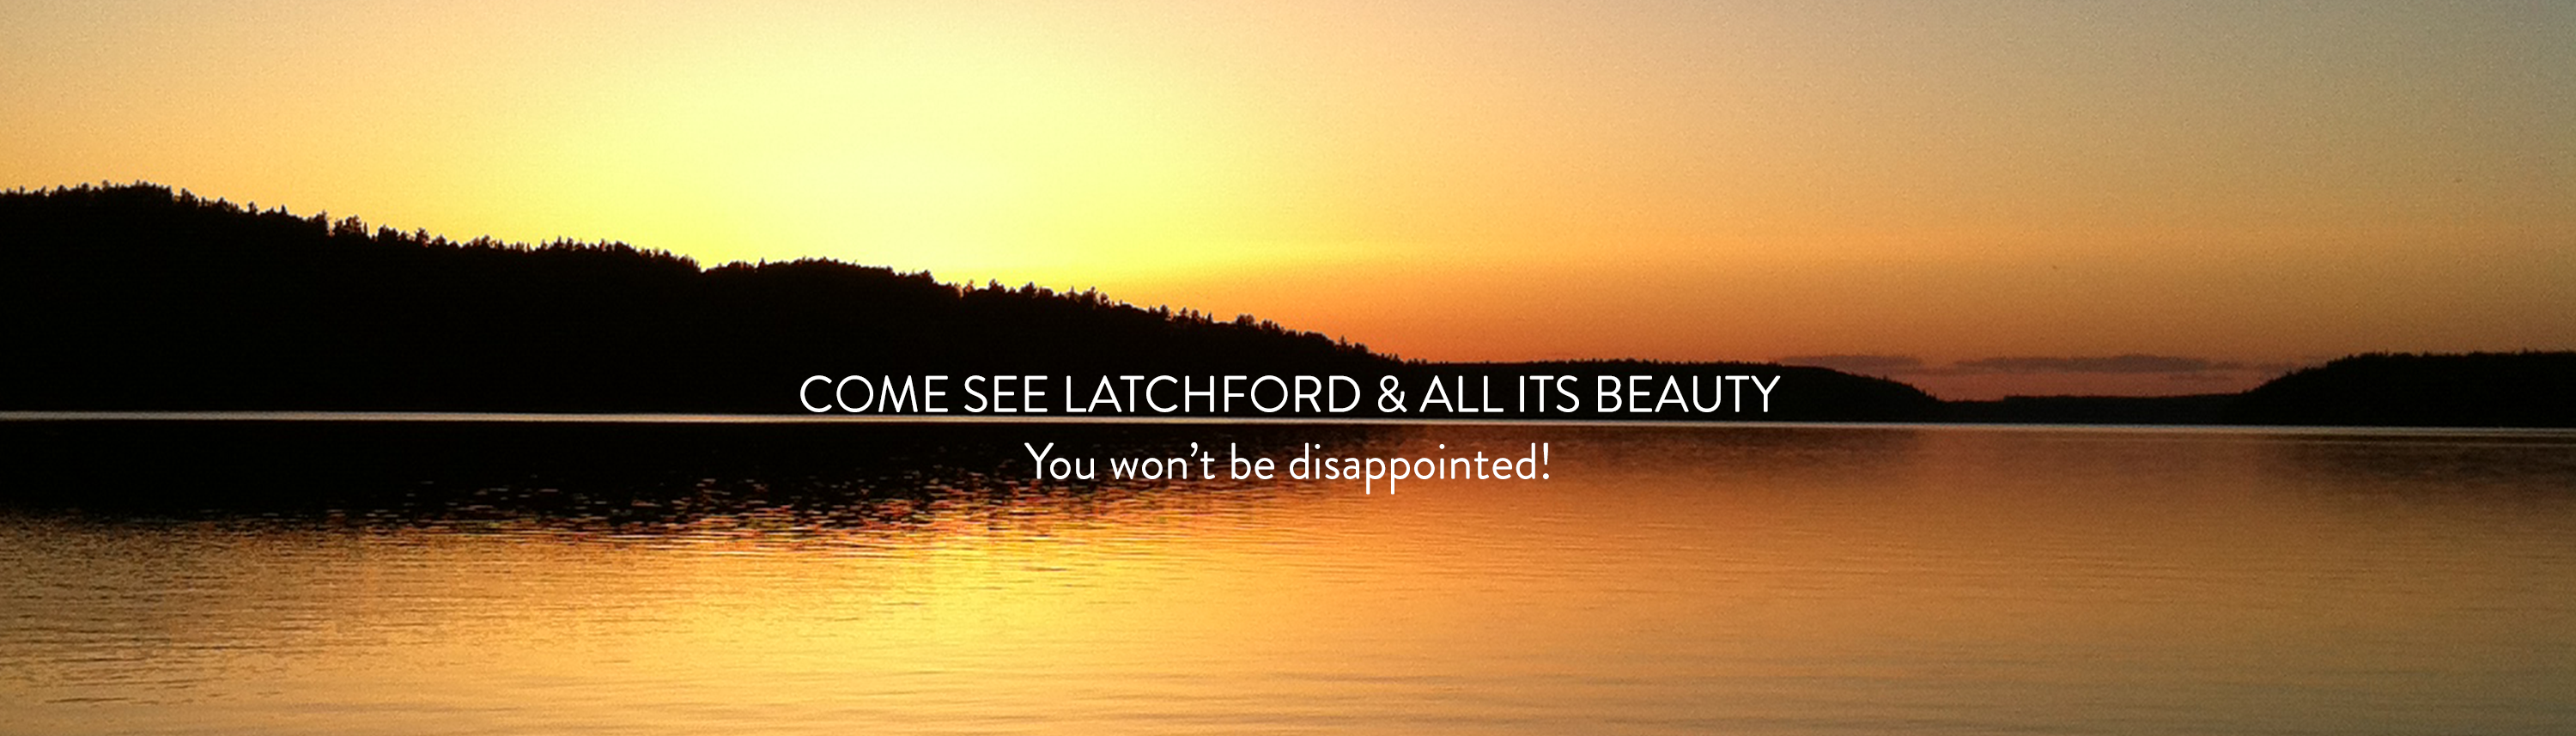 Latchford-Scenery2